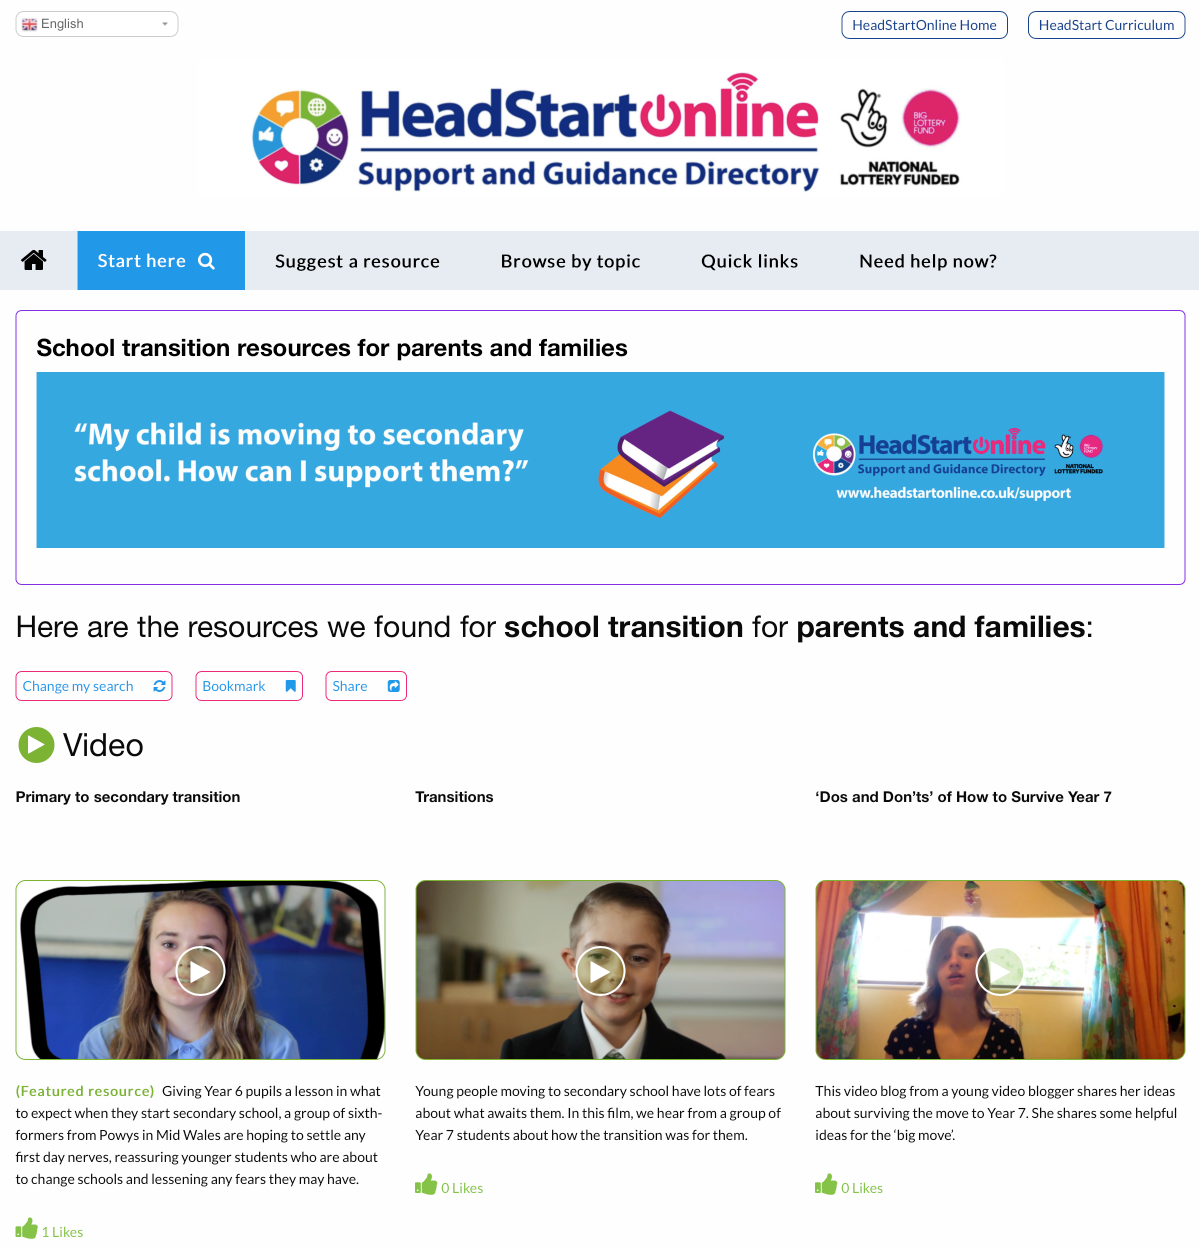 School transition resources for parents and families